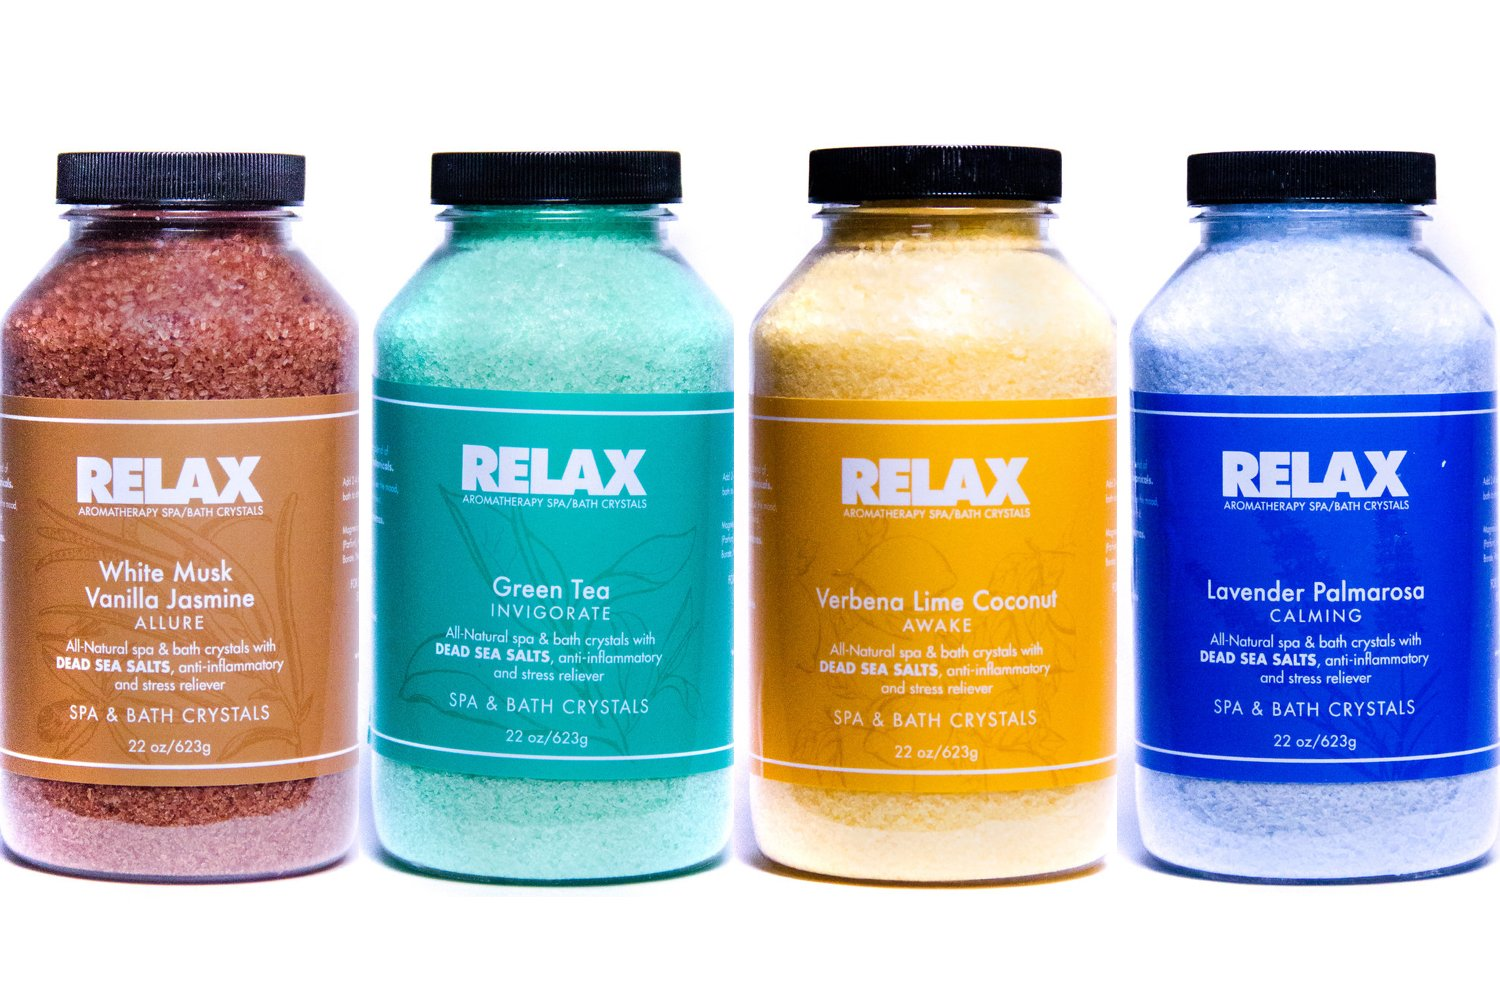 Escape Aromatherapy Bath Crystals -Pack of 4, 22 Oz- All Natural Dead Sea Salts - Aroma Therapy For Hottub, Spa & Whirlpool by Relax Spa & Bath